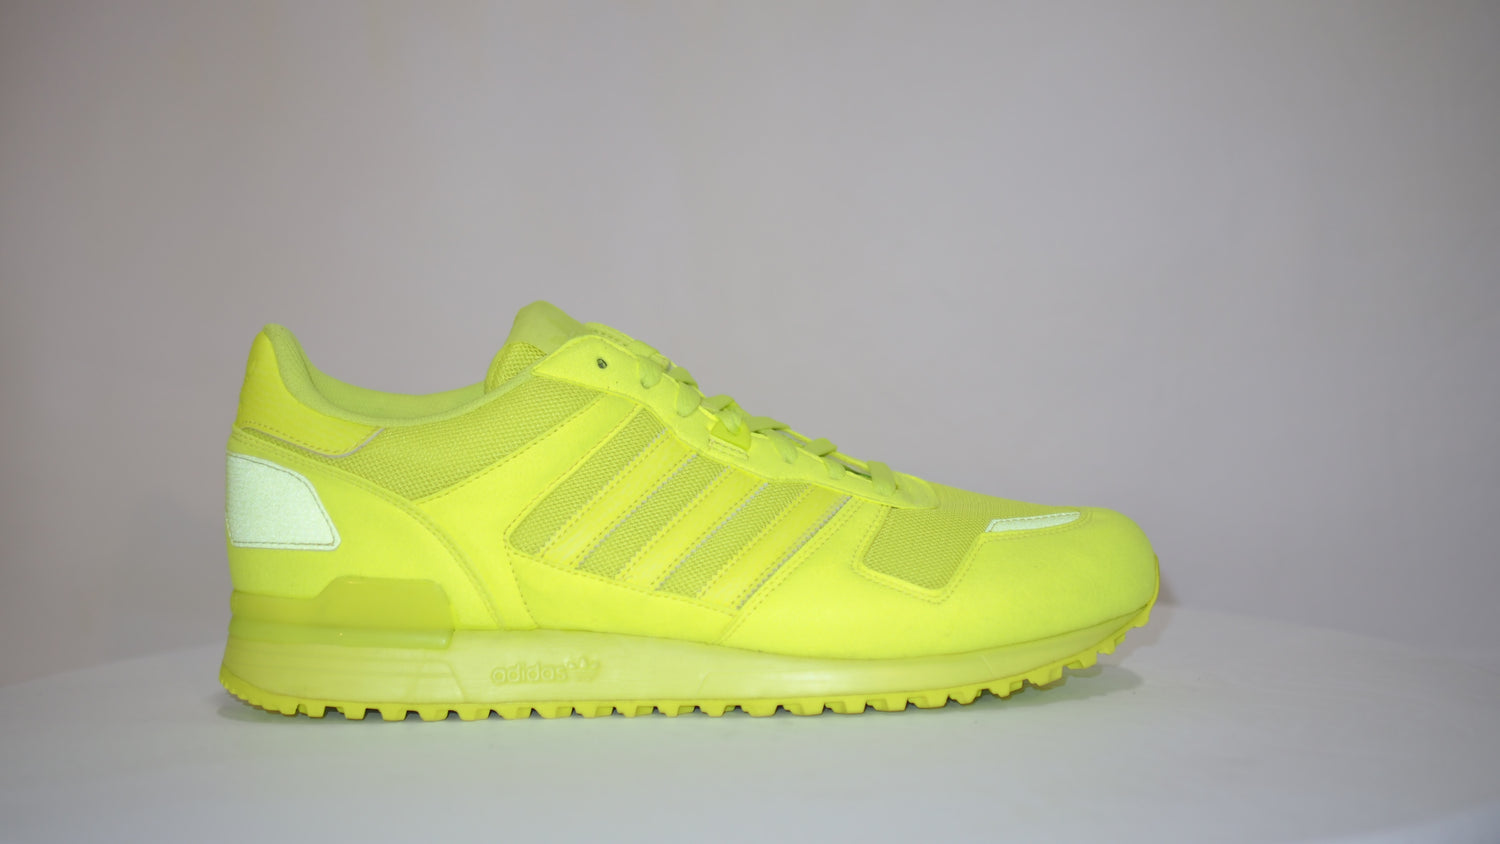 ZX 700 - Dream Town Shoes